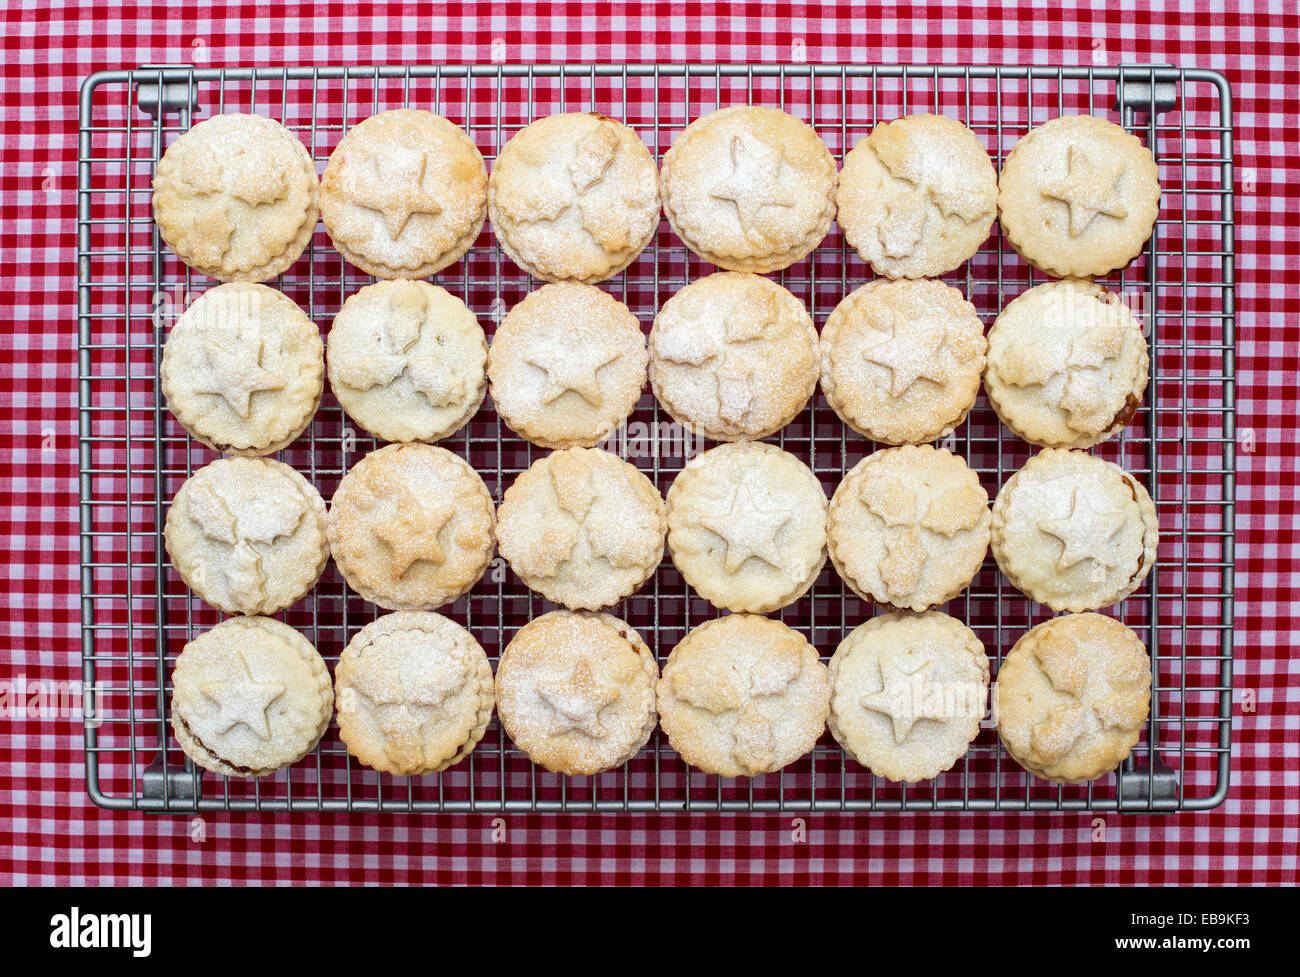 Baked Homemade Christmas mince pies - Stock Image